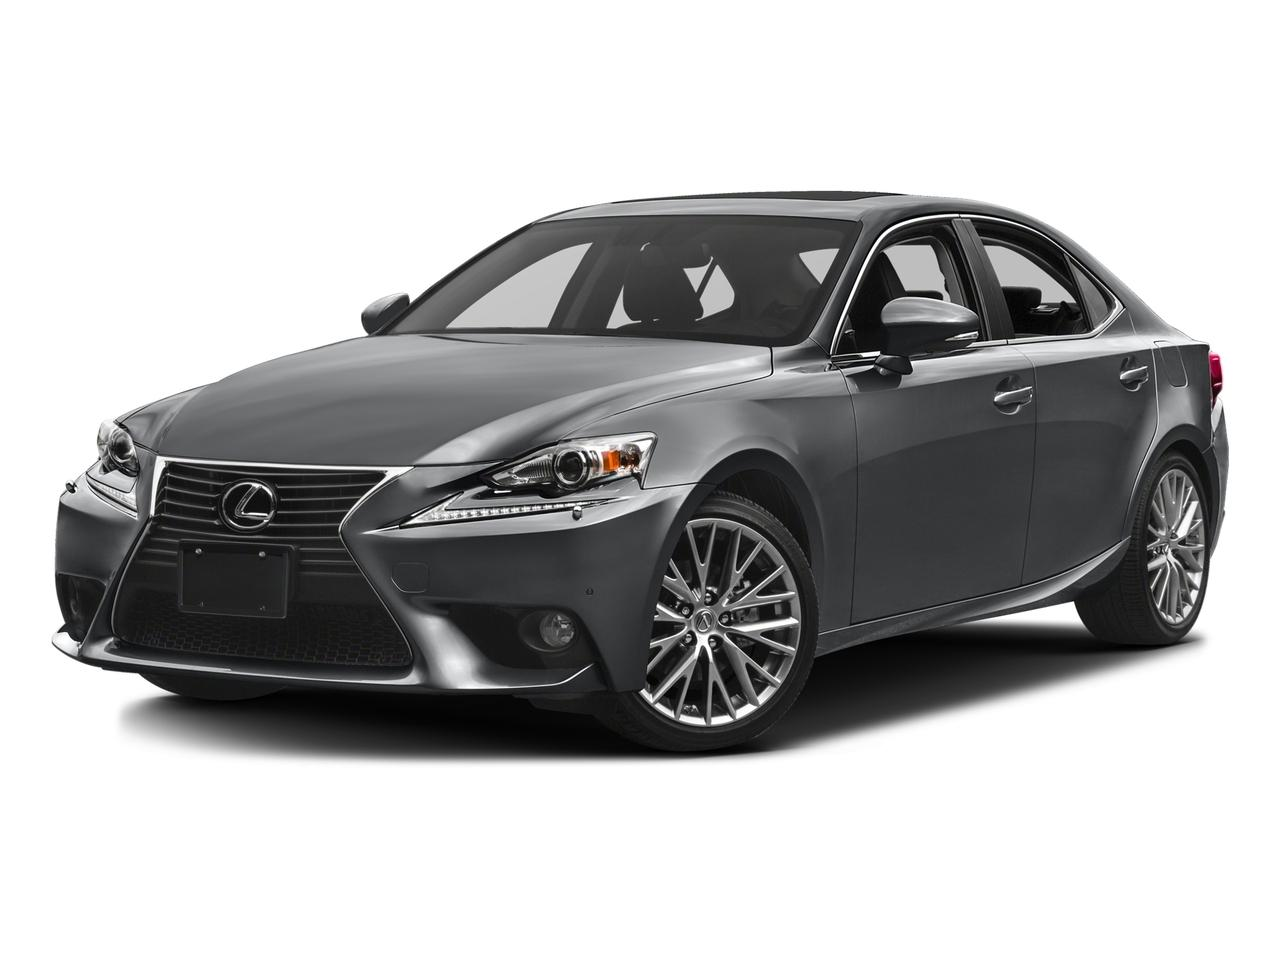 2015 Lexus IS 250 Vehicle Photo in Temple, TX 76502